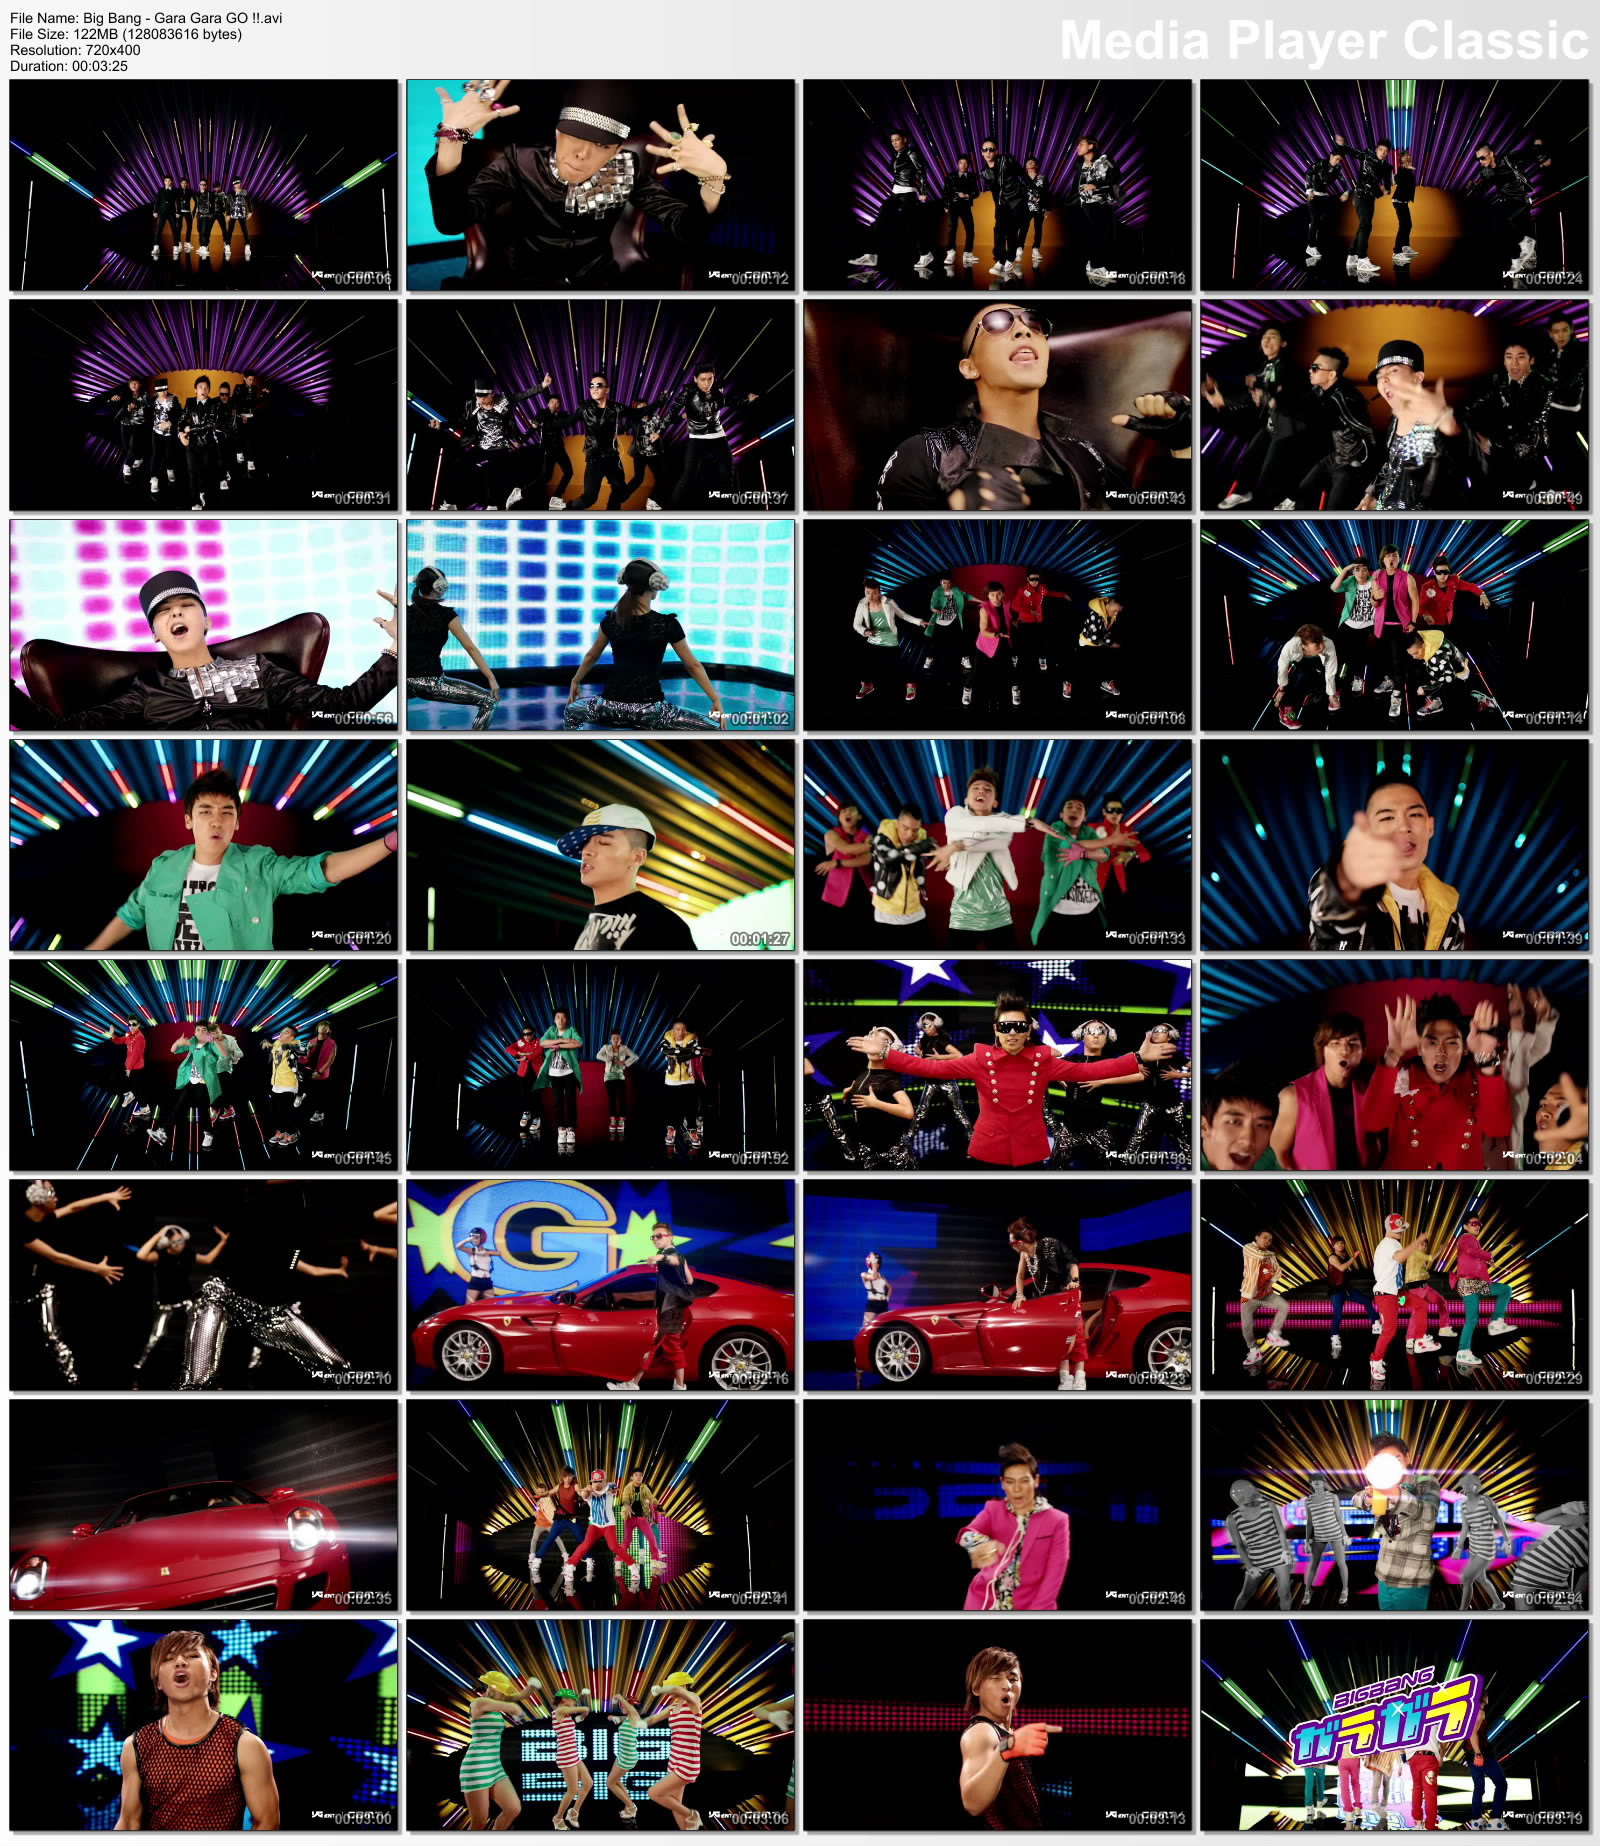 http://yutakis.files.wordpress.com/2009/11/bigbang-garagarago.jpg